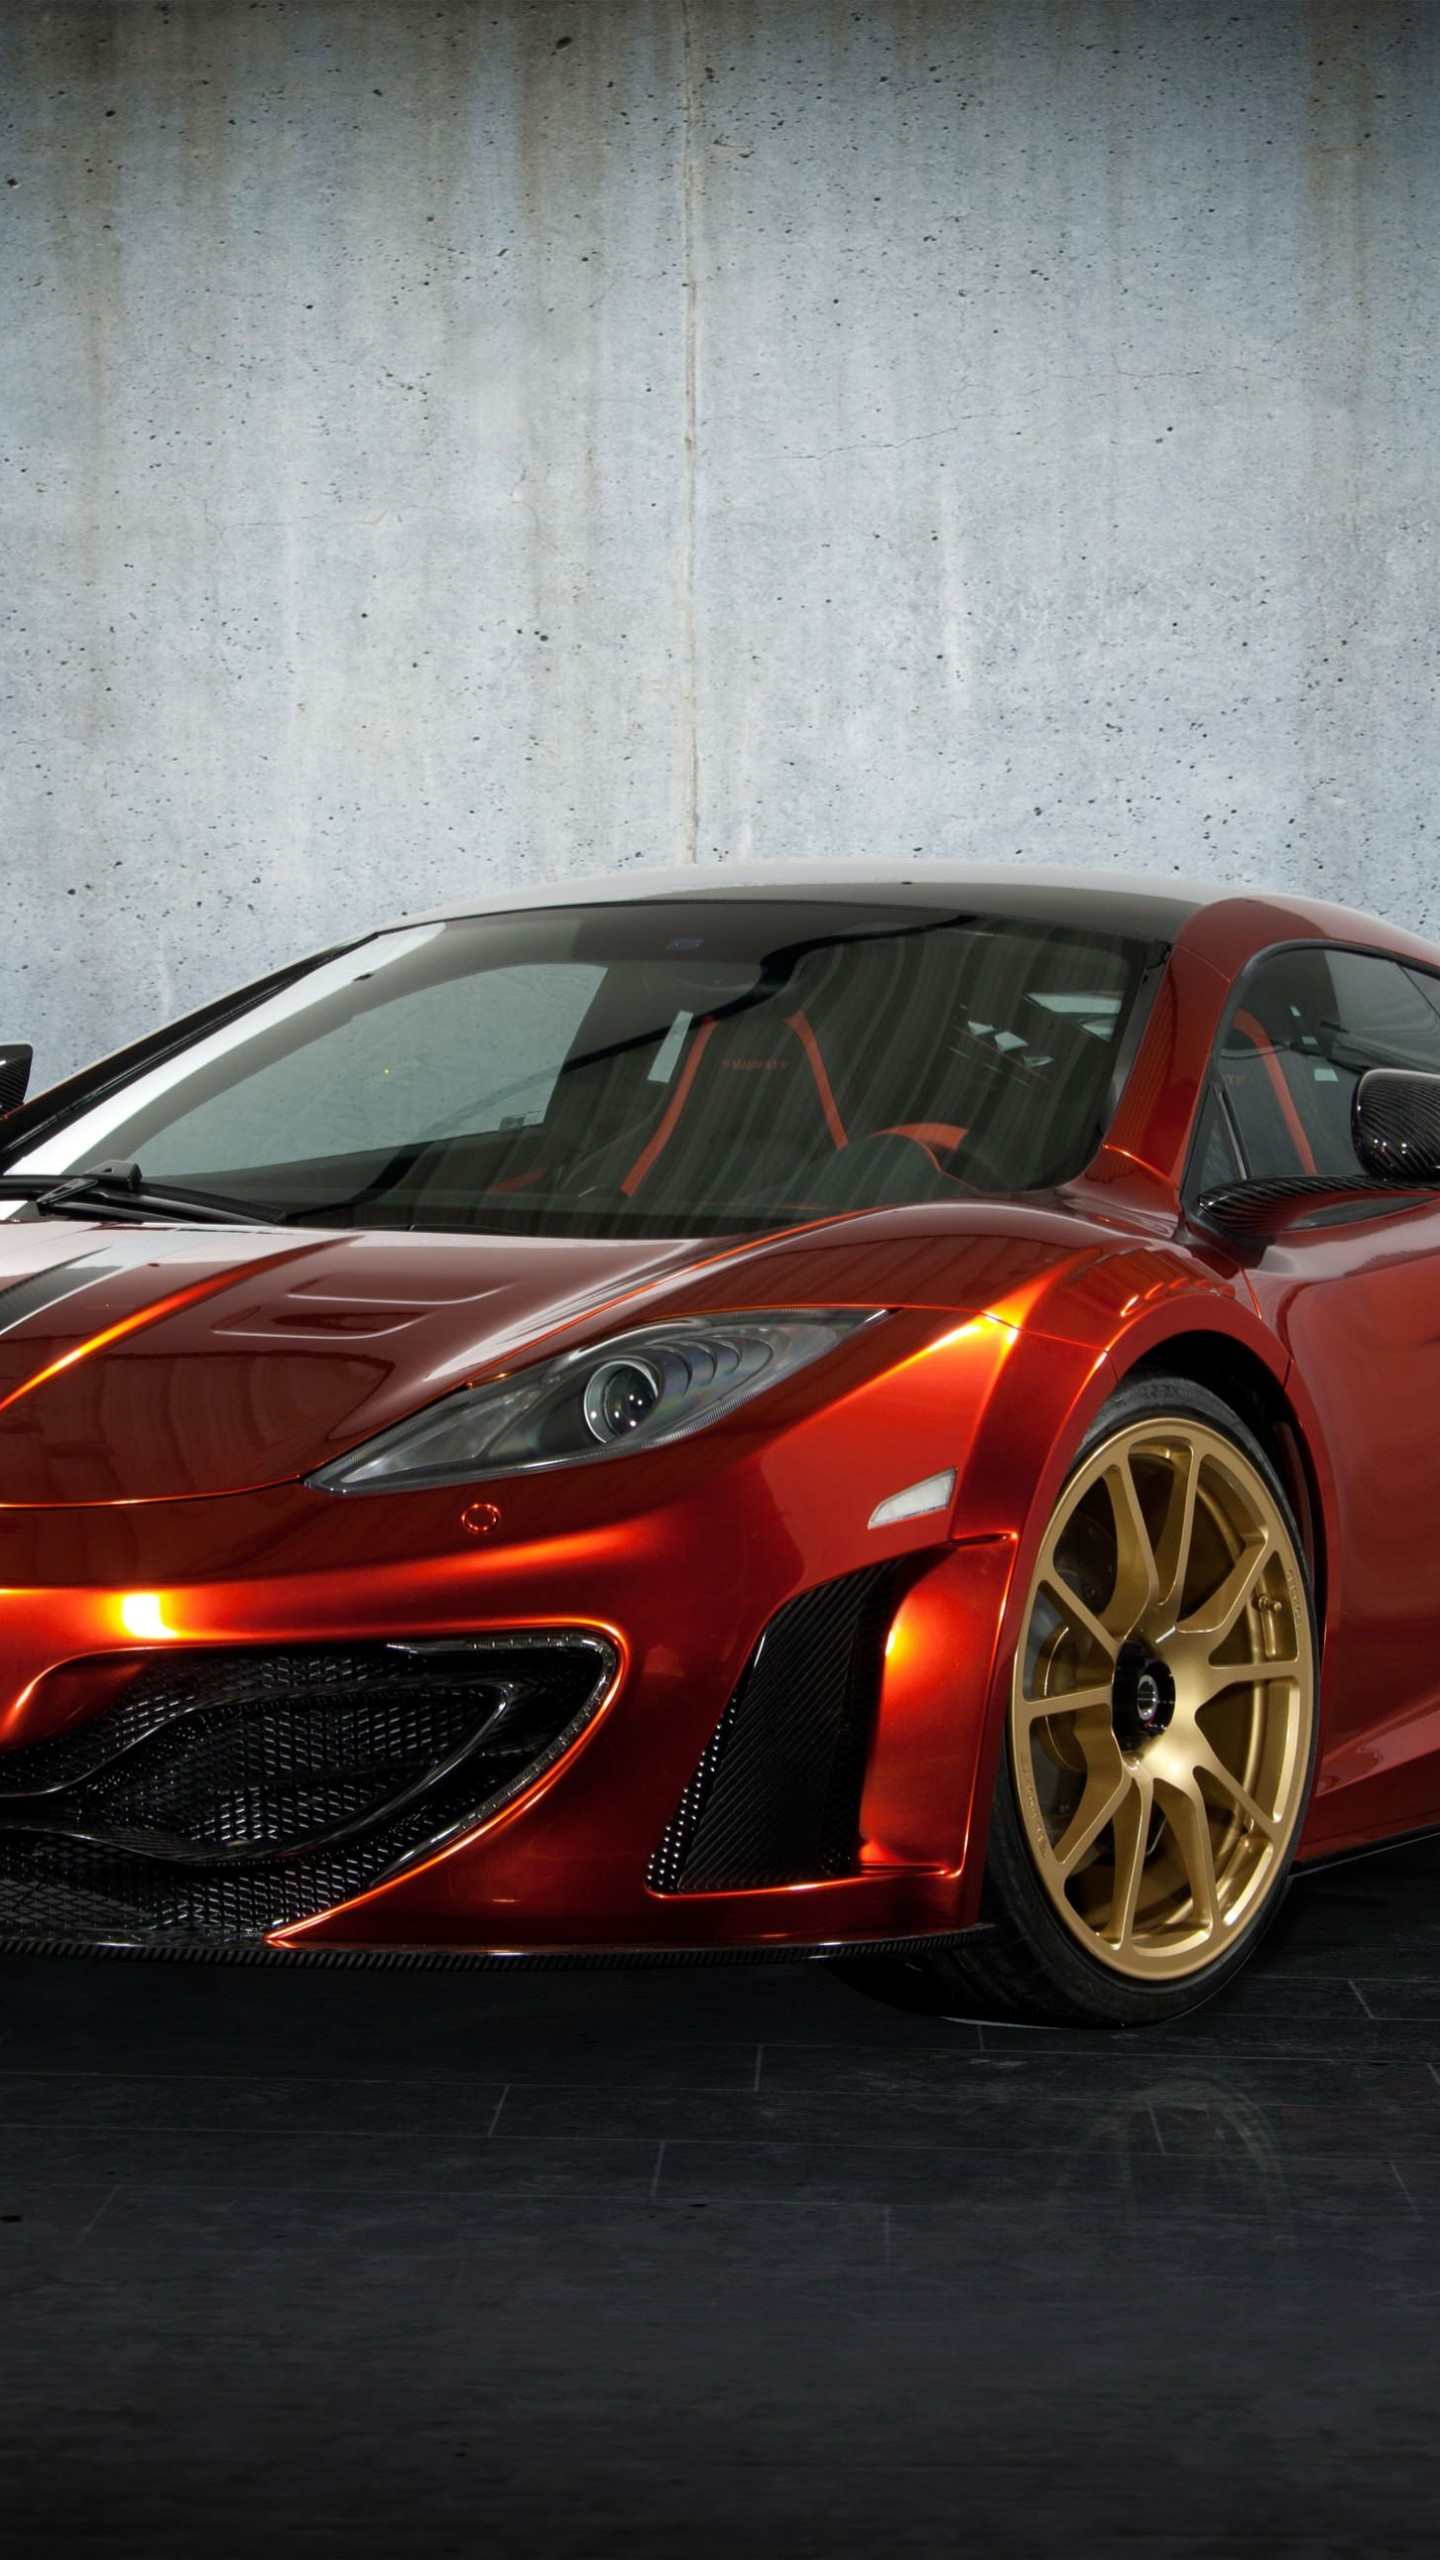 McLaren MP4-12Cf By Mansory Wallpaper for SAMSUNG Galaxy Note 4